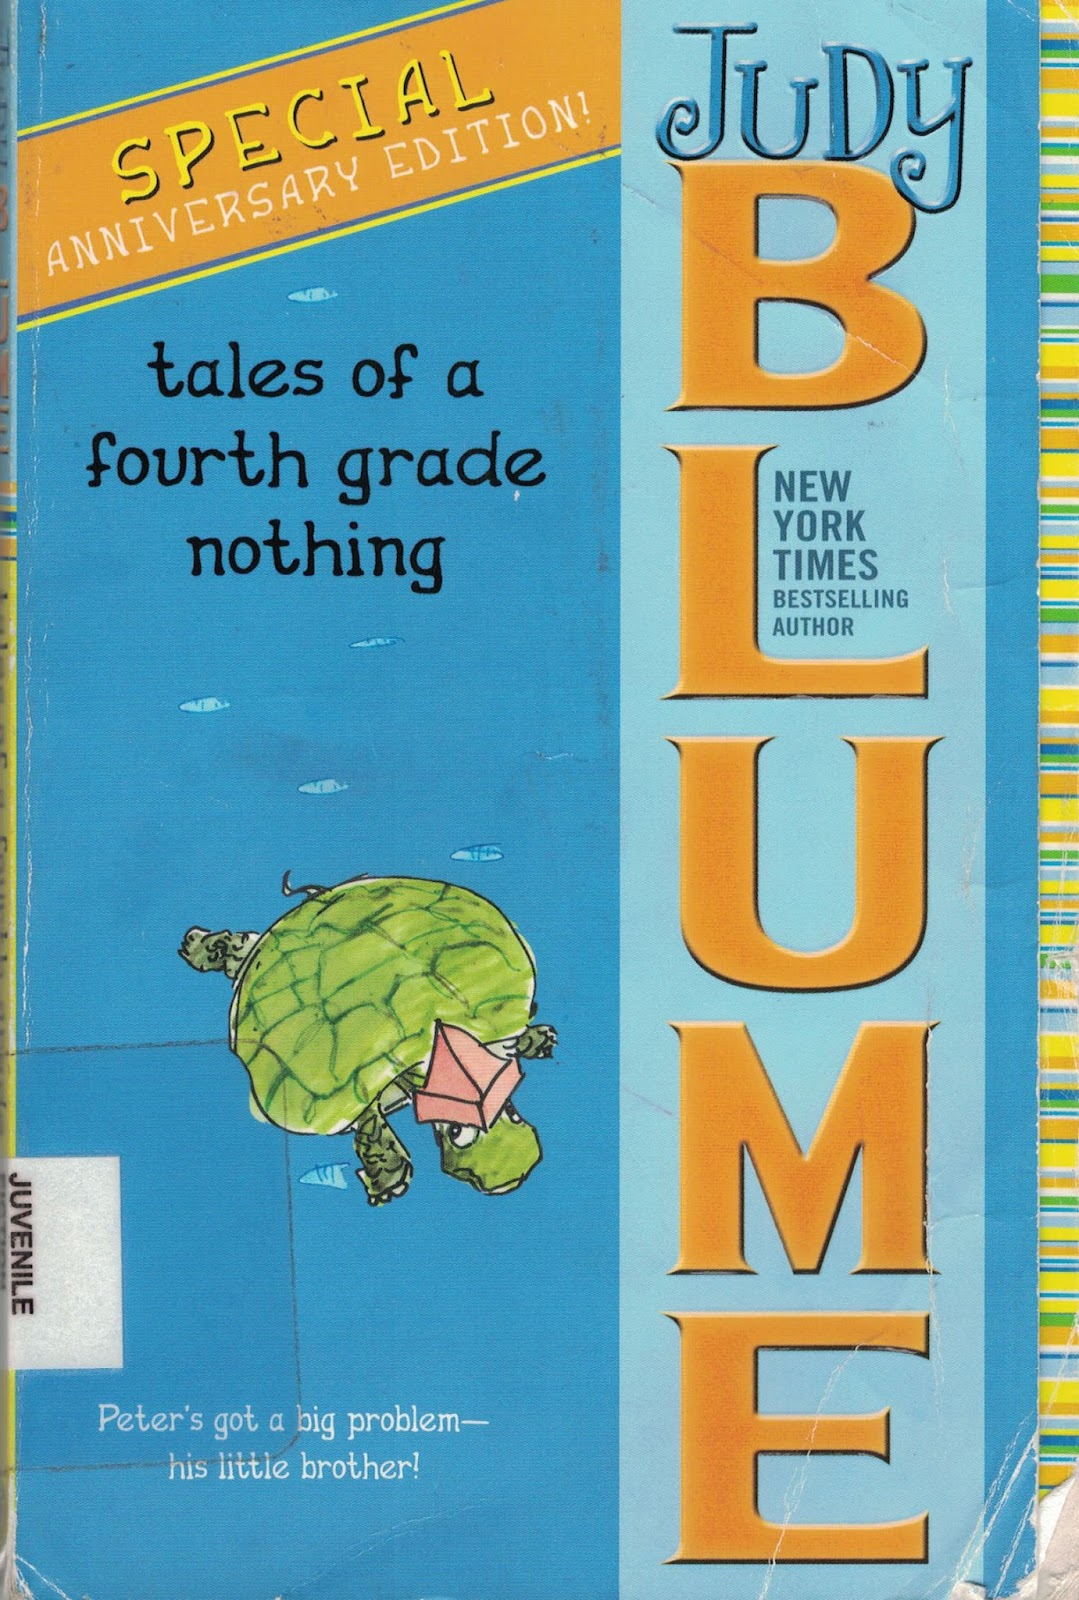 For The Sake Of Reading Module 2 Tales Of A Fourth Grade Nothing By Judy Blume